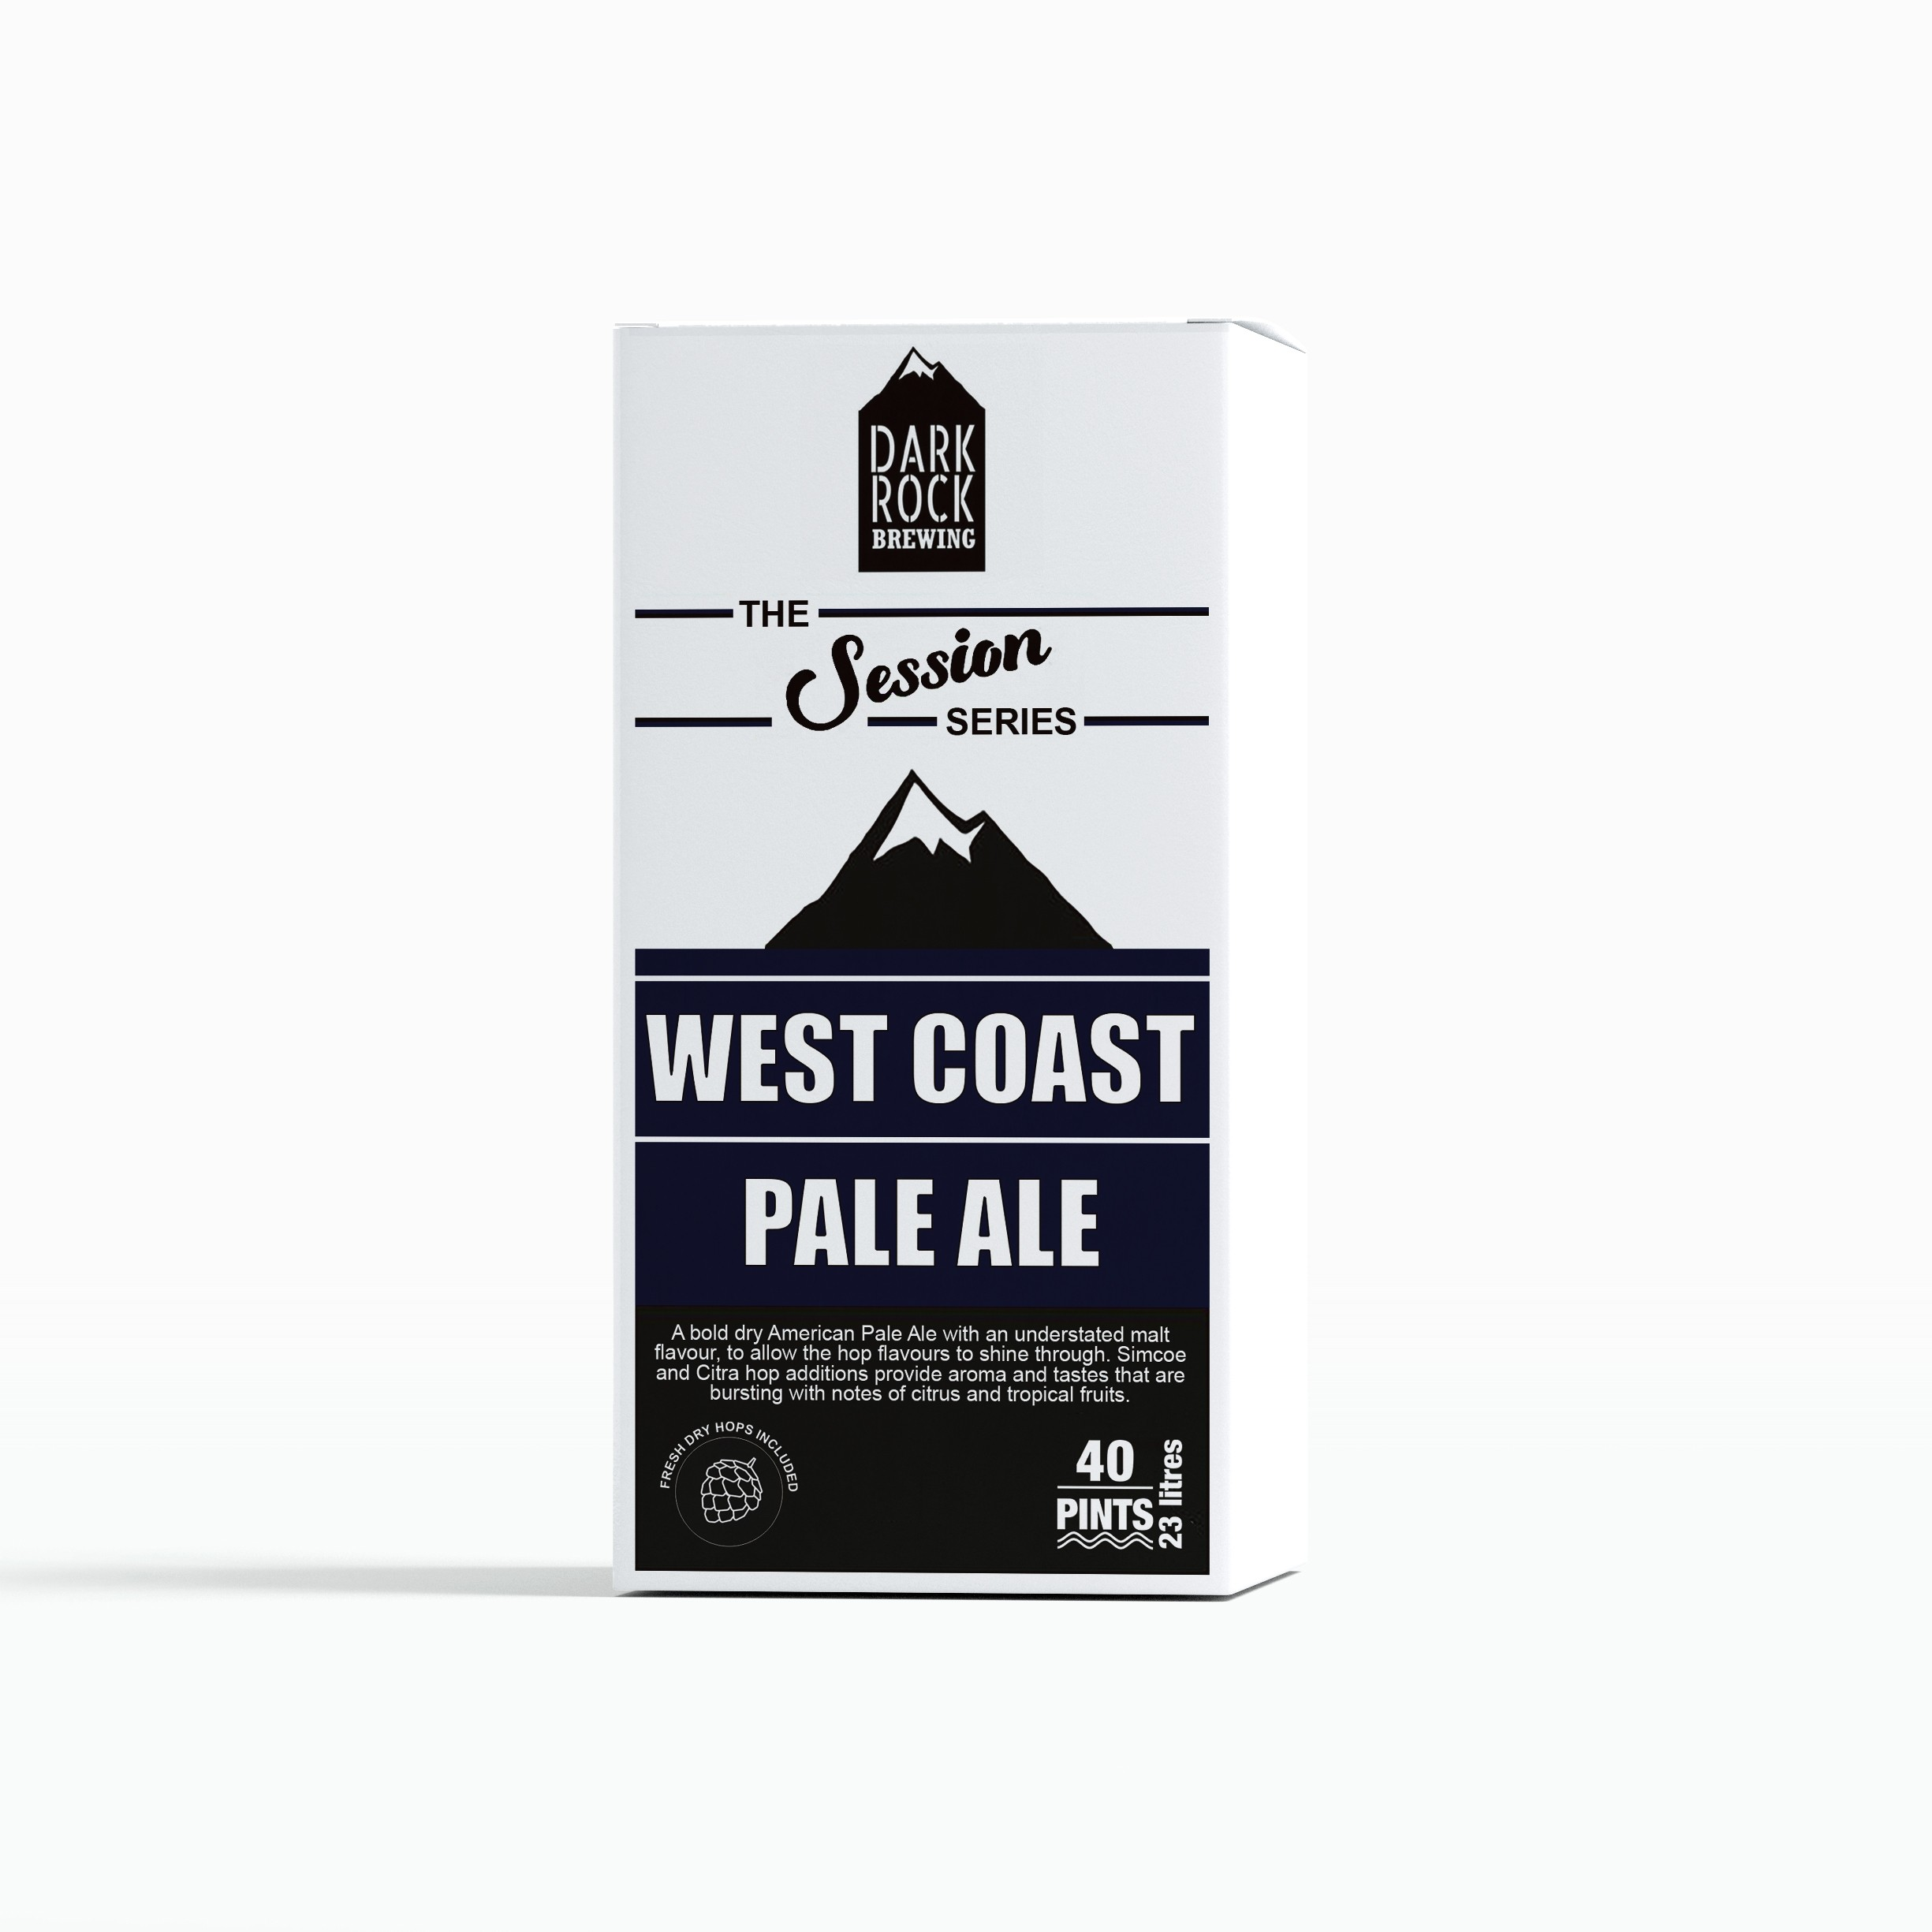 Dark Rock Session Series - West Coast Pale Ale